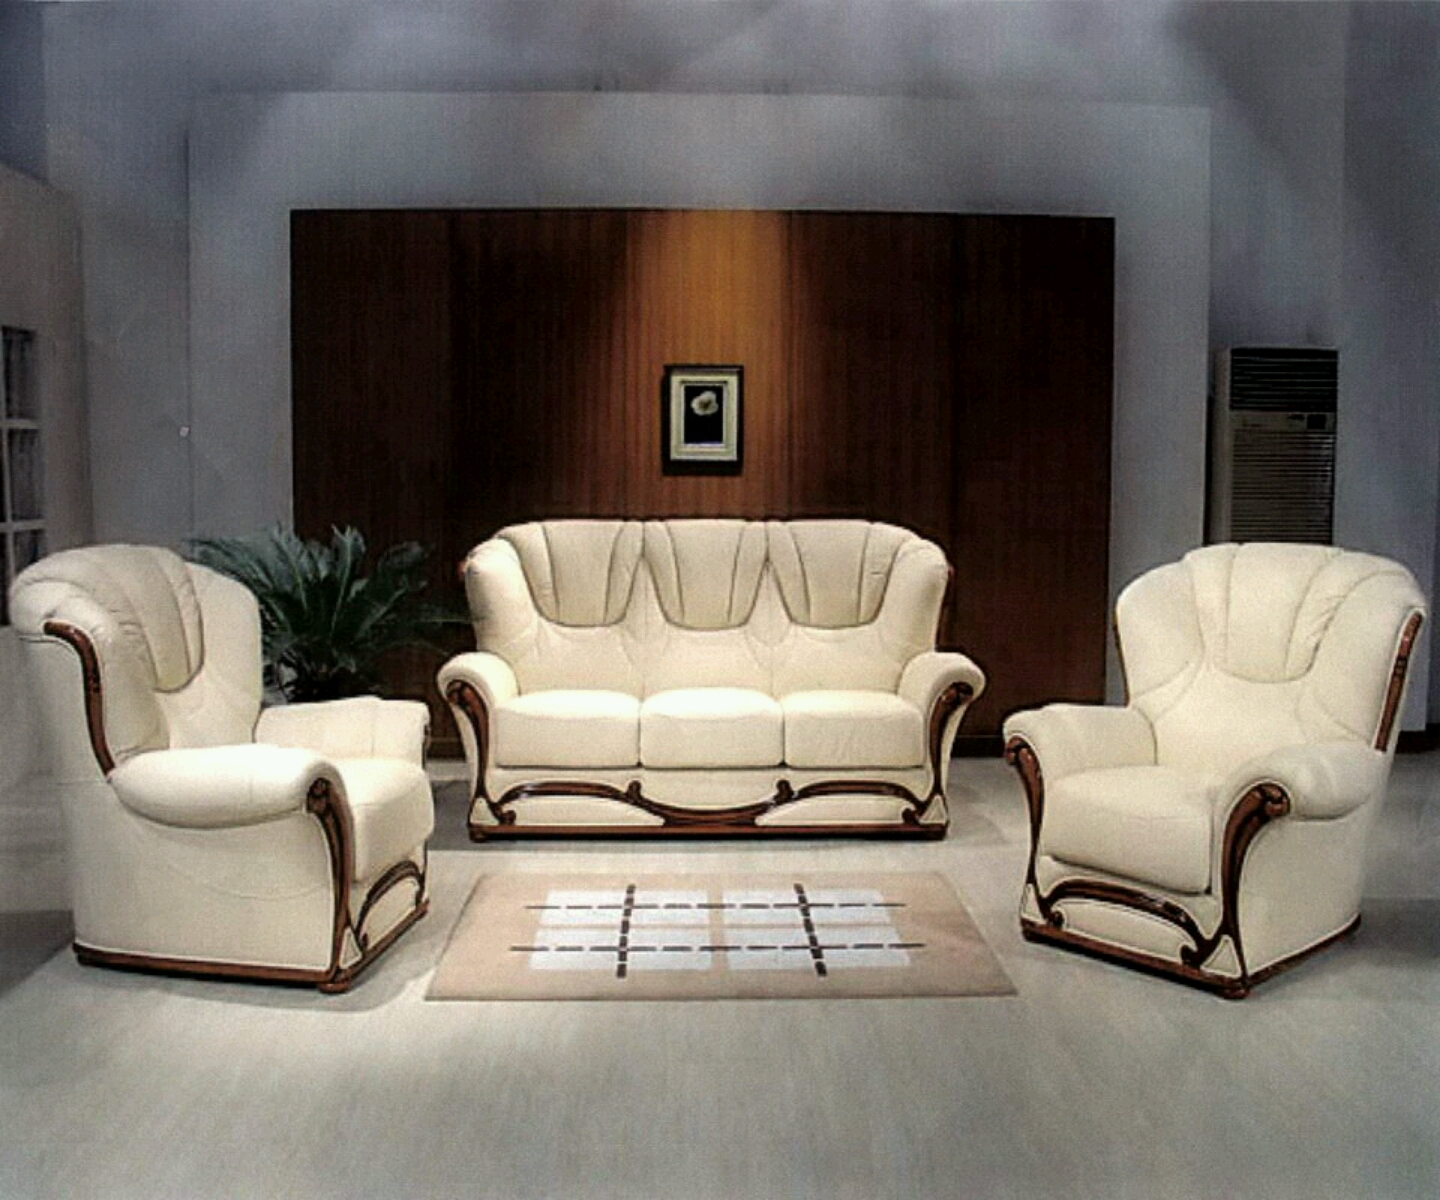 Modern sofa set designs interior decorating for Sofa interior design